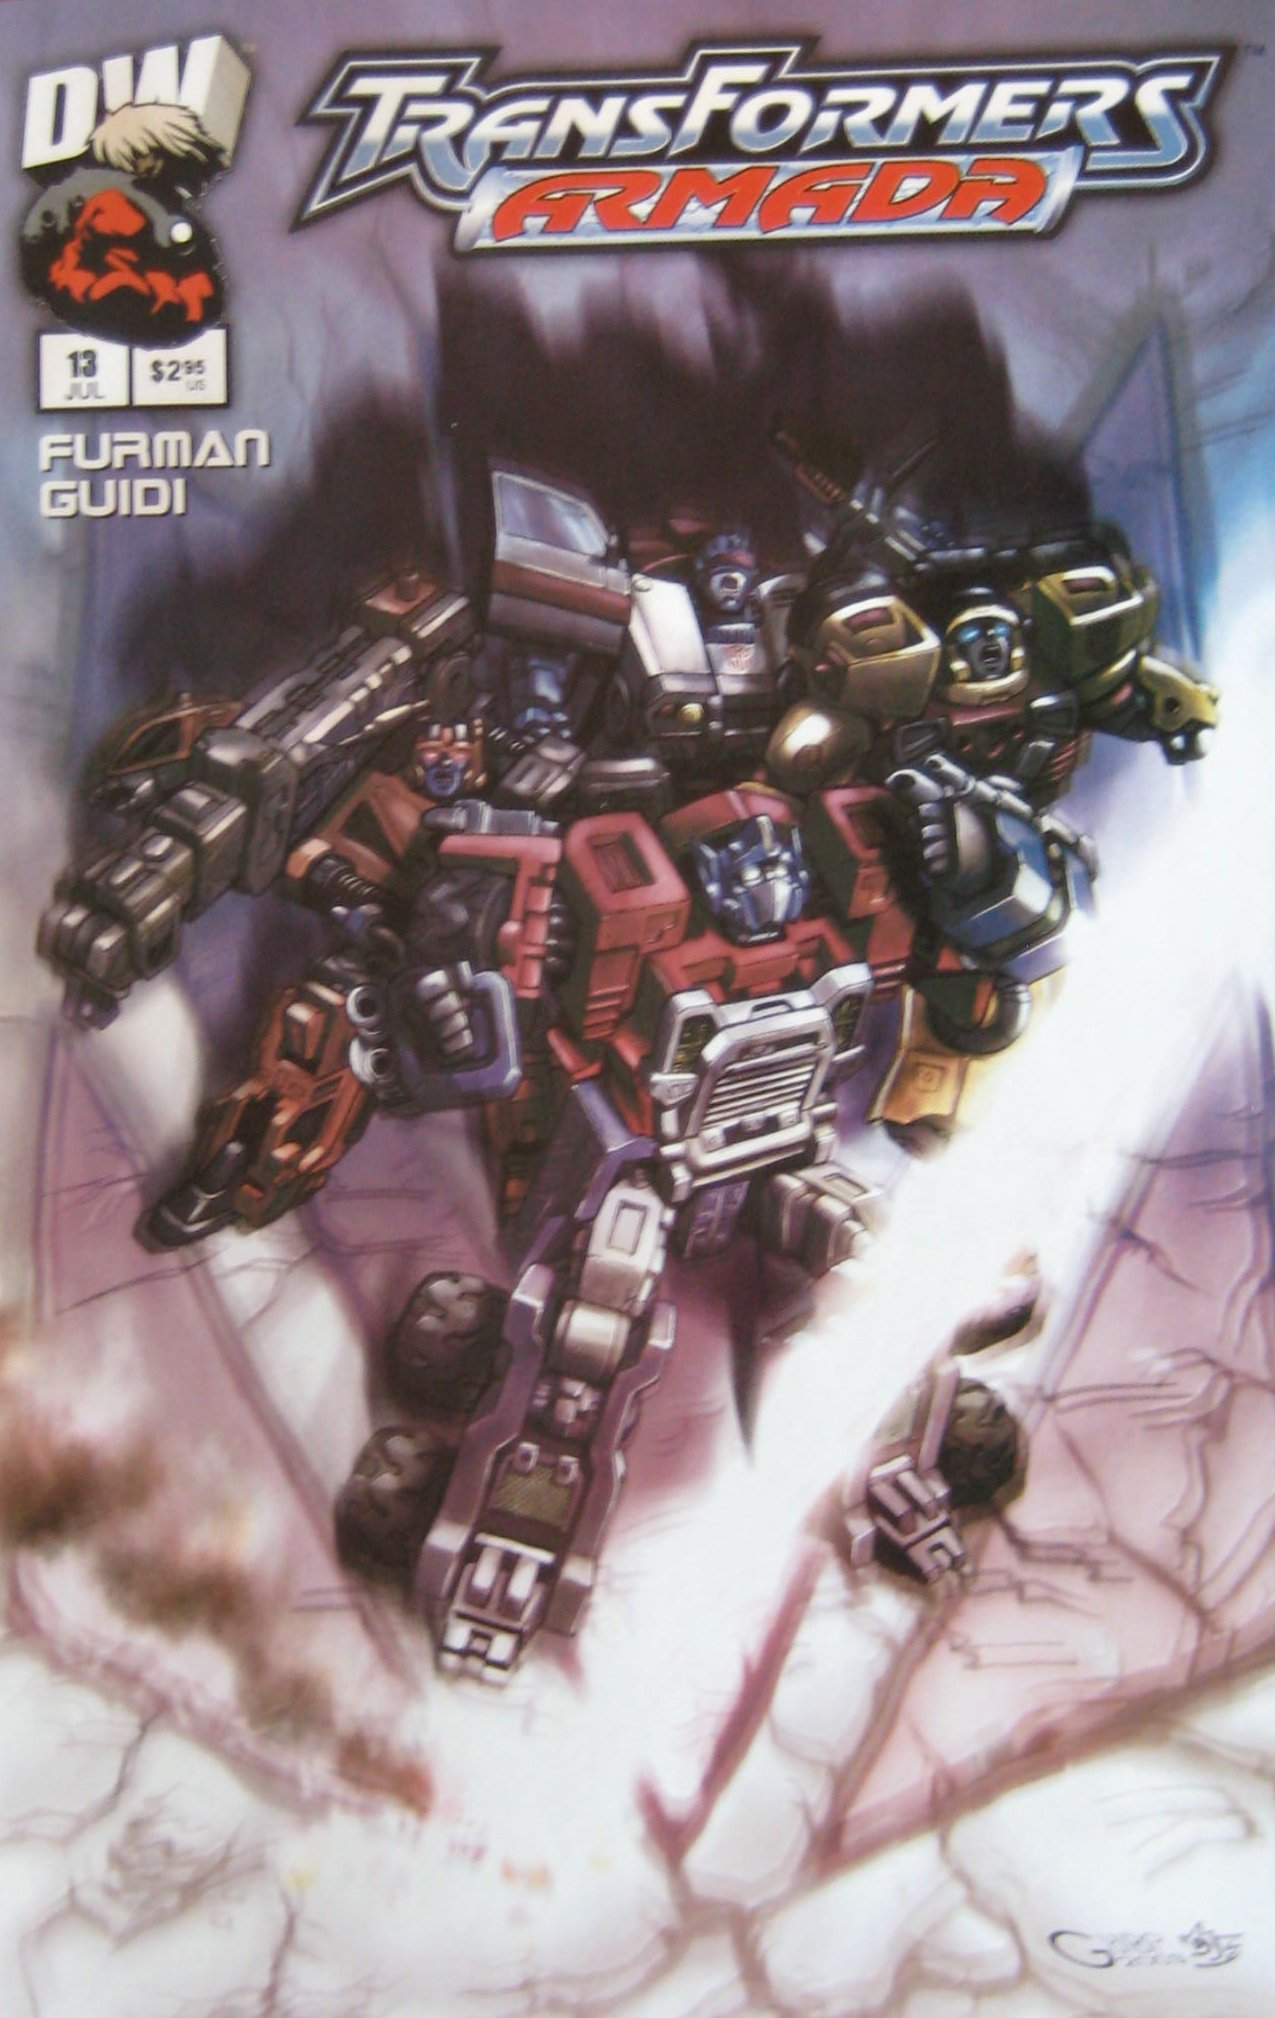 Download TRANSFORMERS ARMADA, # 13, July 2003 (Volume 1) PDF